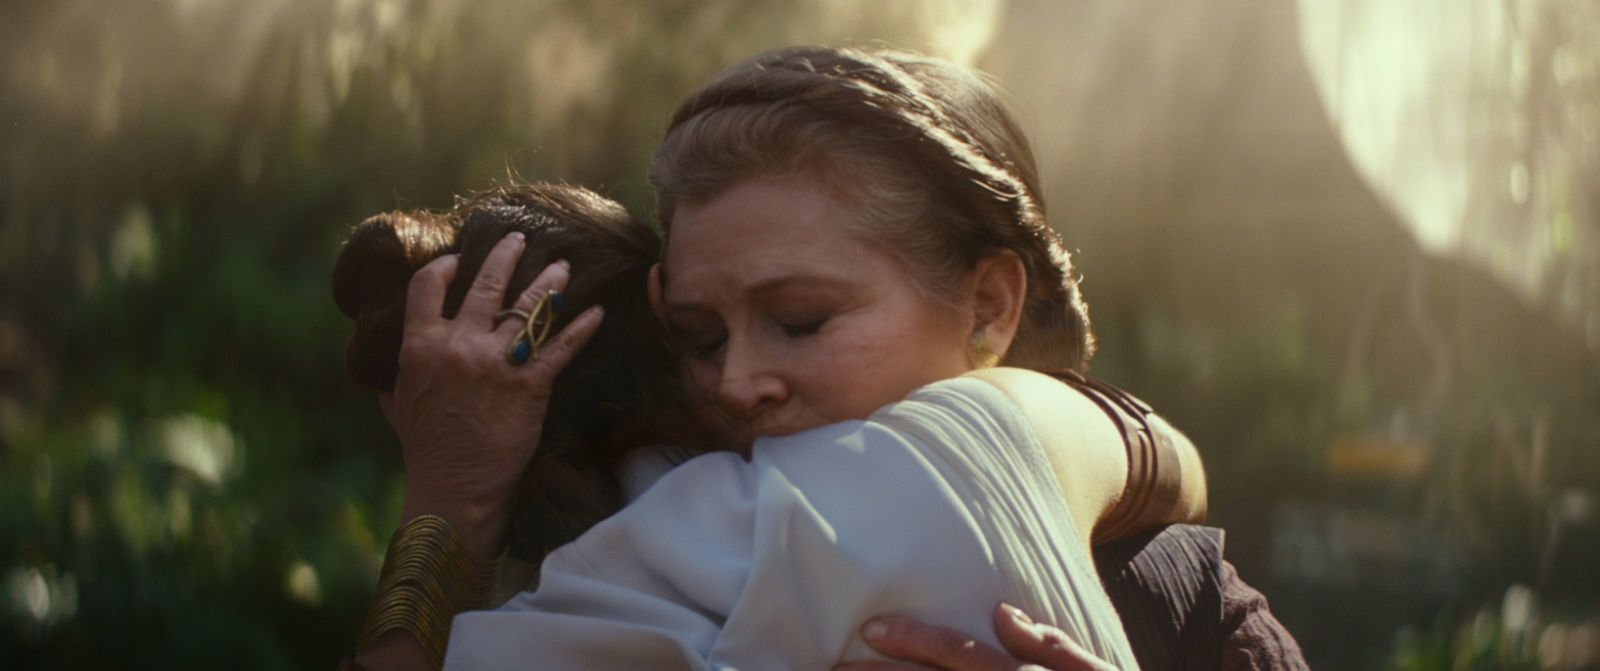 VFX reel shows how Carrie Fisher was edited into Star Wars: The Rise of Skywalker